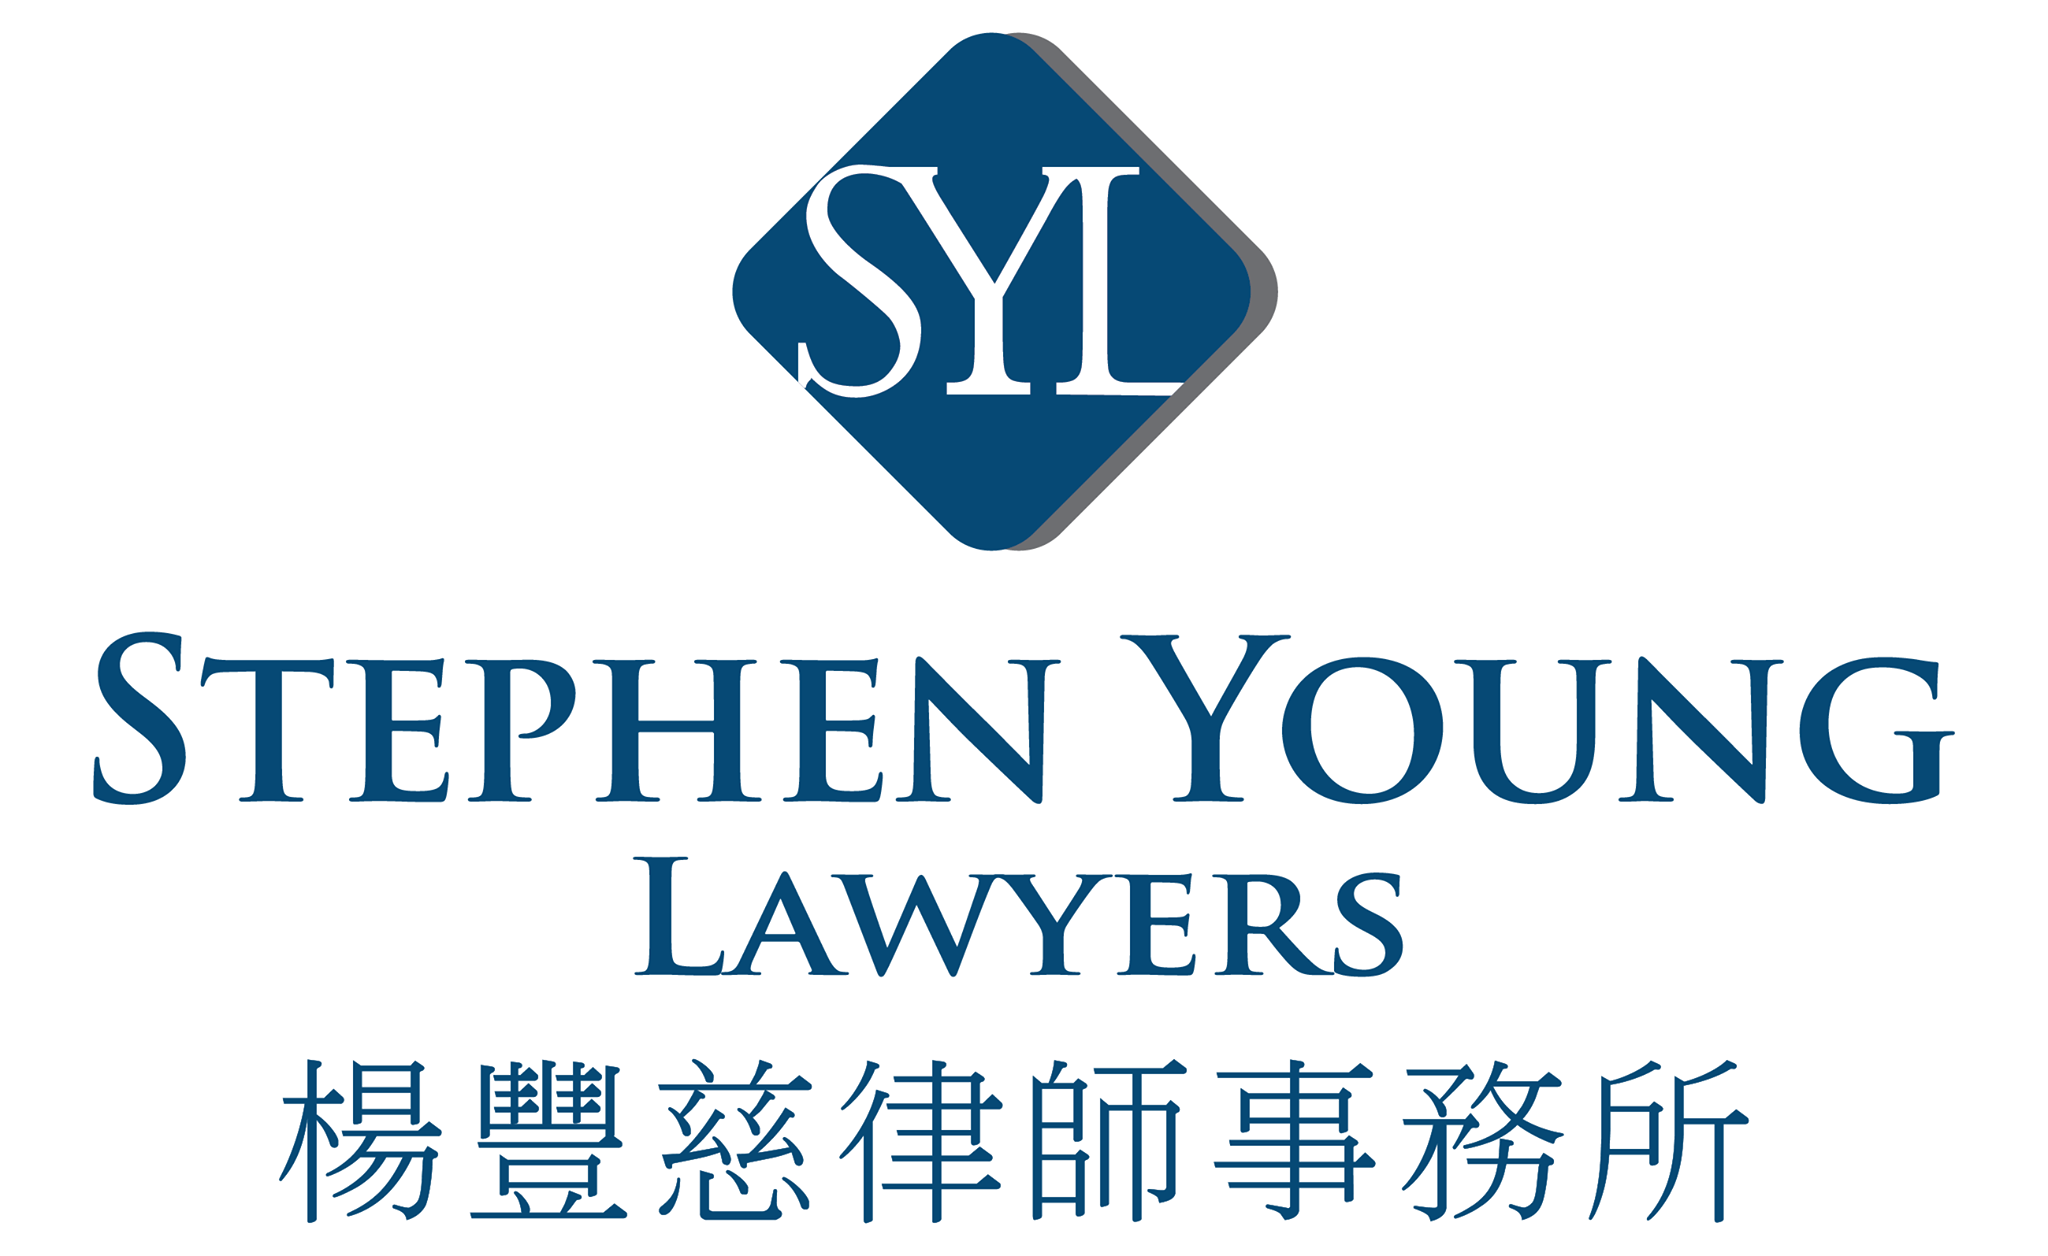 Company logo of Stephen Young Lawyers